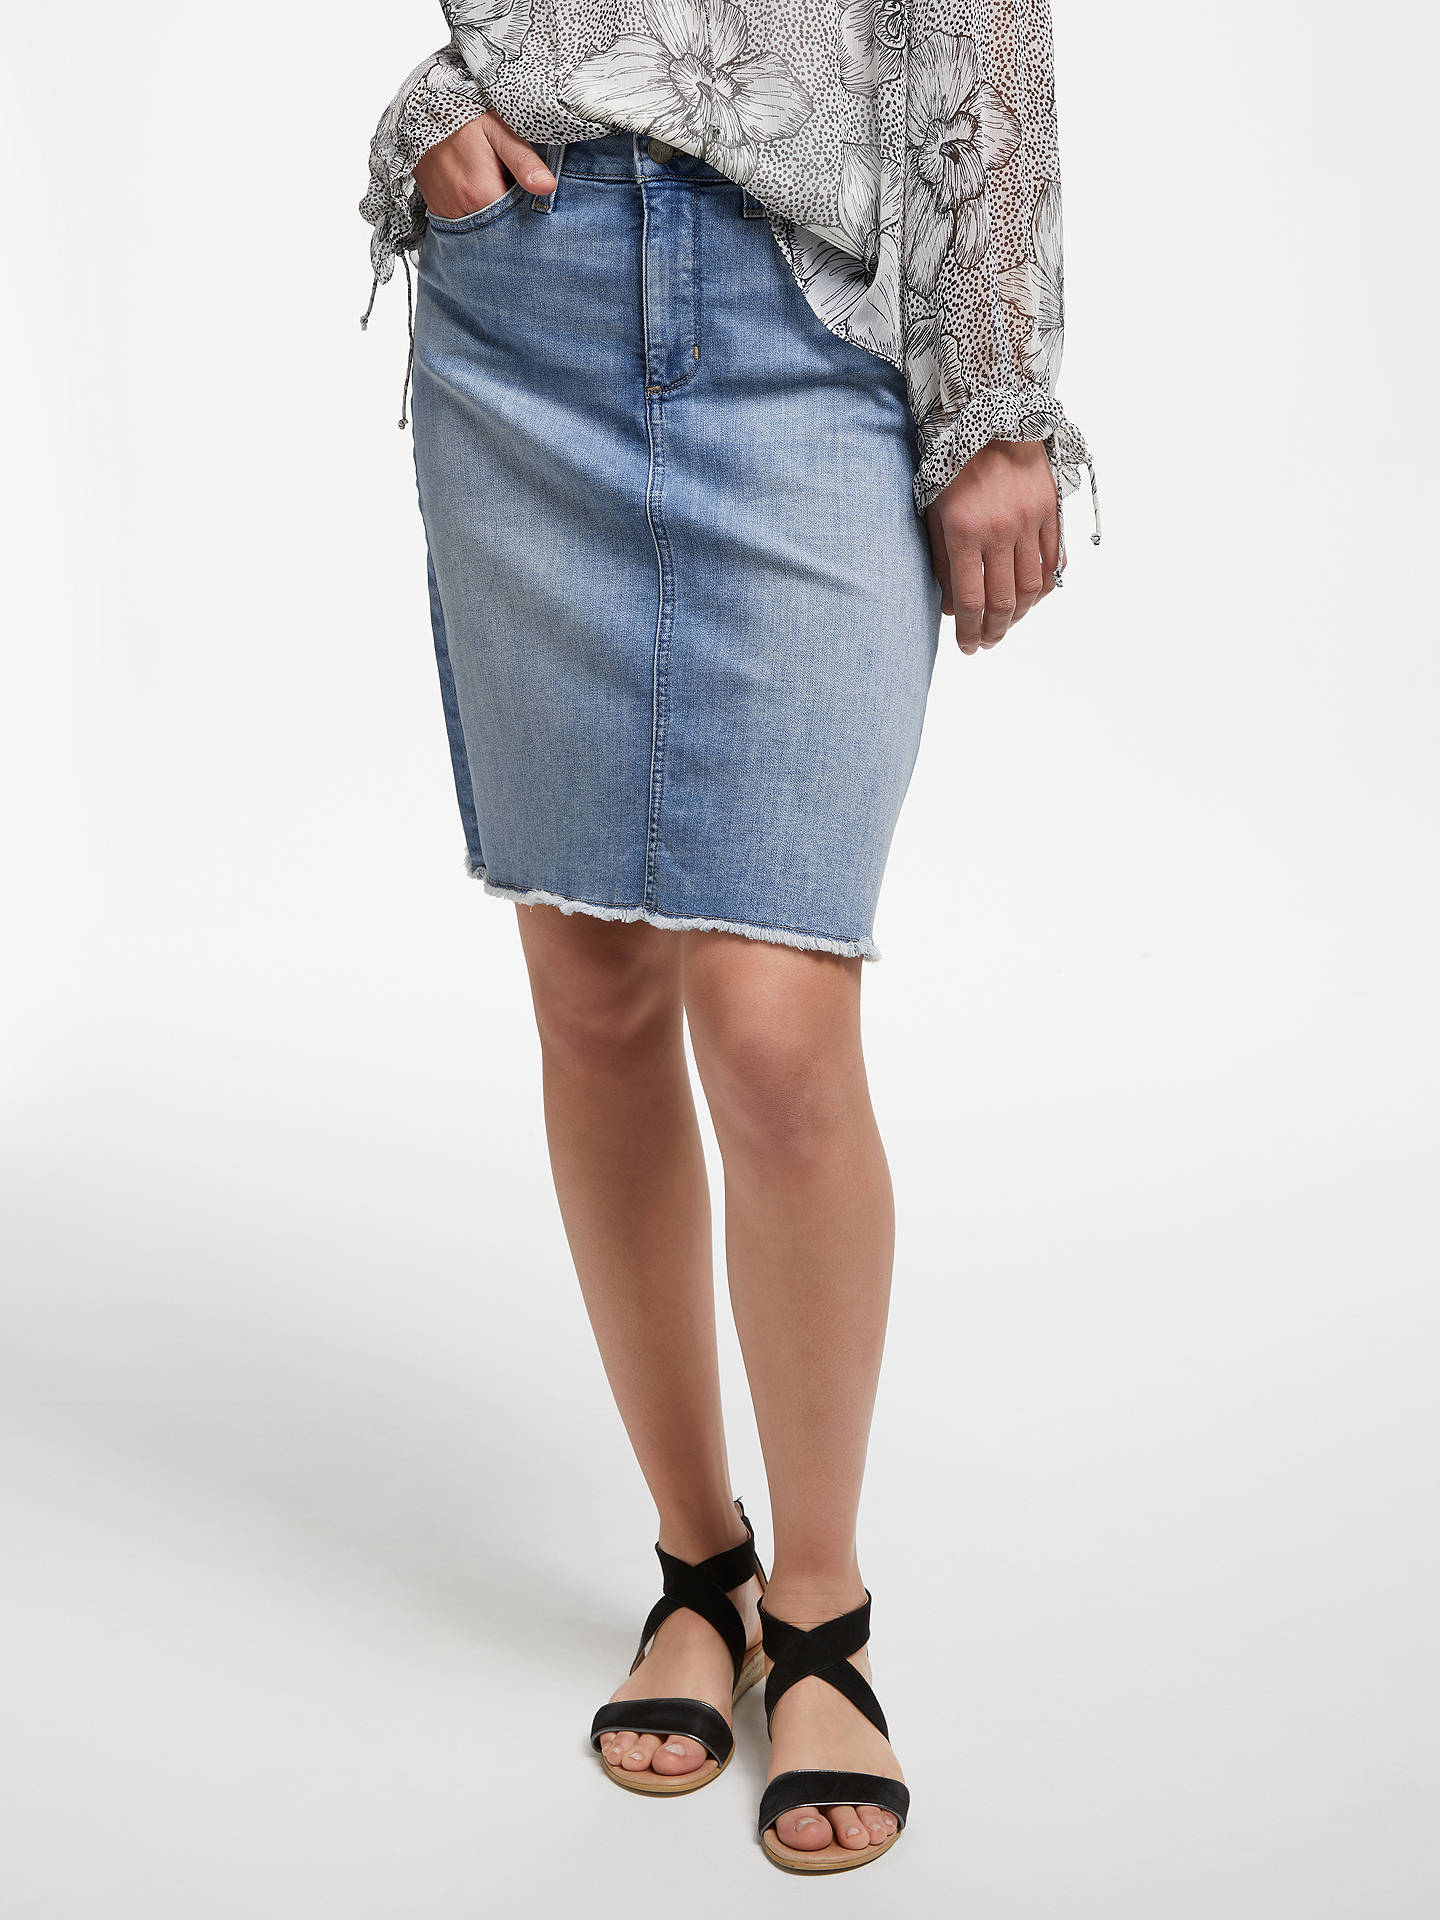 66f6175a7c82 ... 0bdb32aa1d Buy NYDJ Frayed Hem Denim Skirt, Dreamstate, 8 Online at  johnlewis.com ...